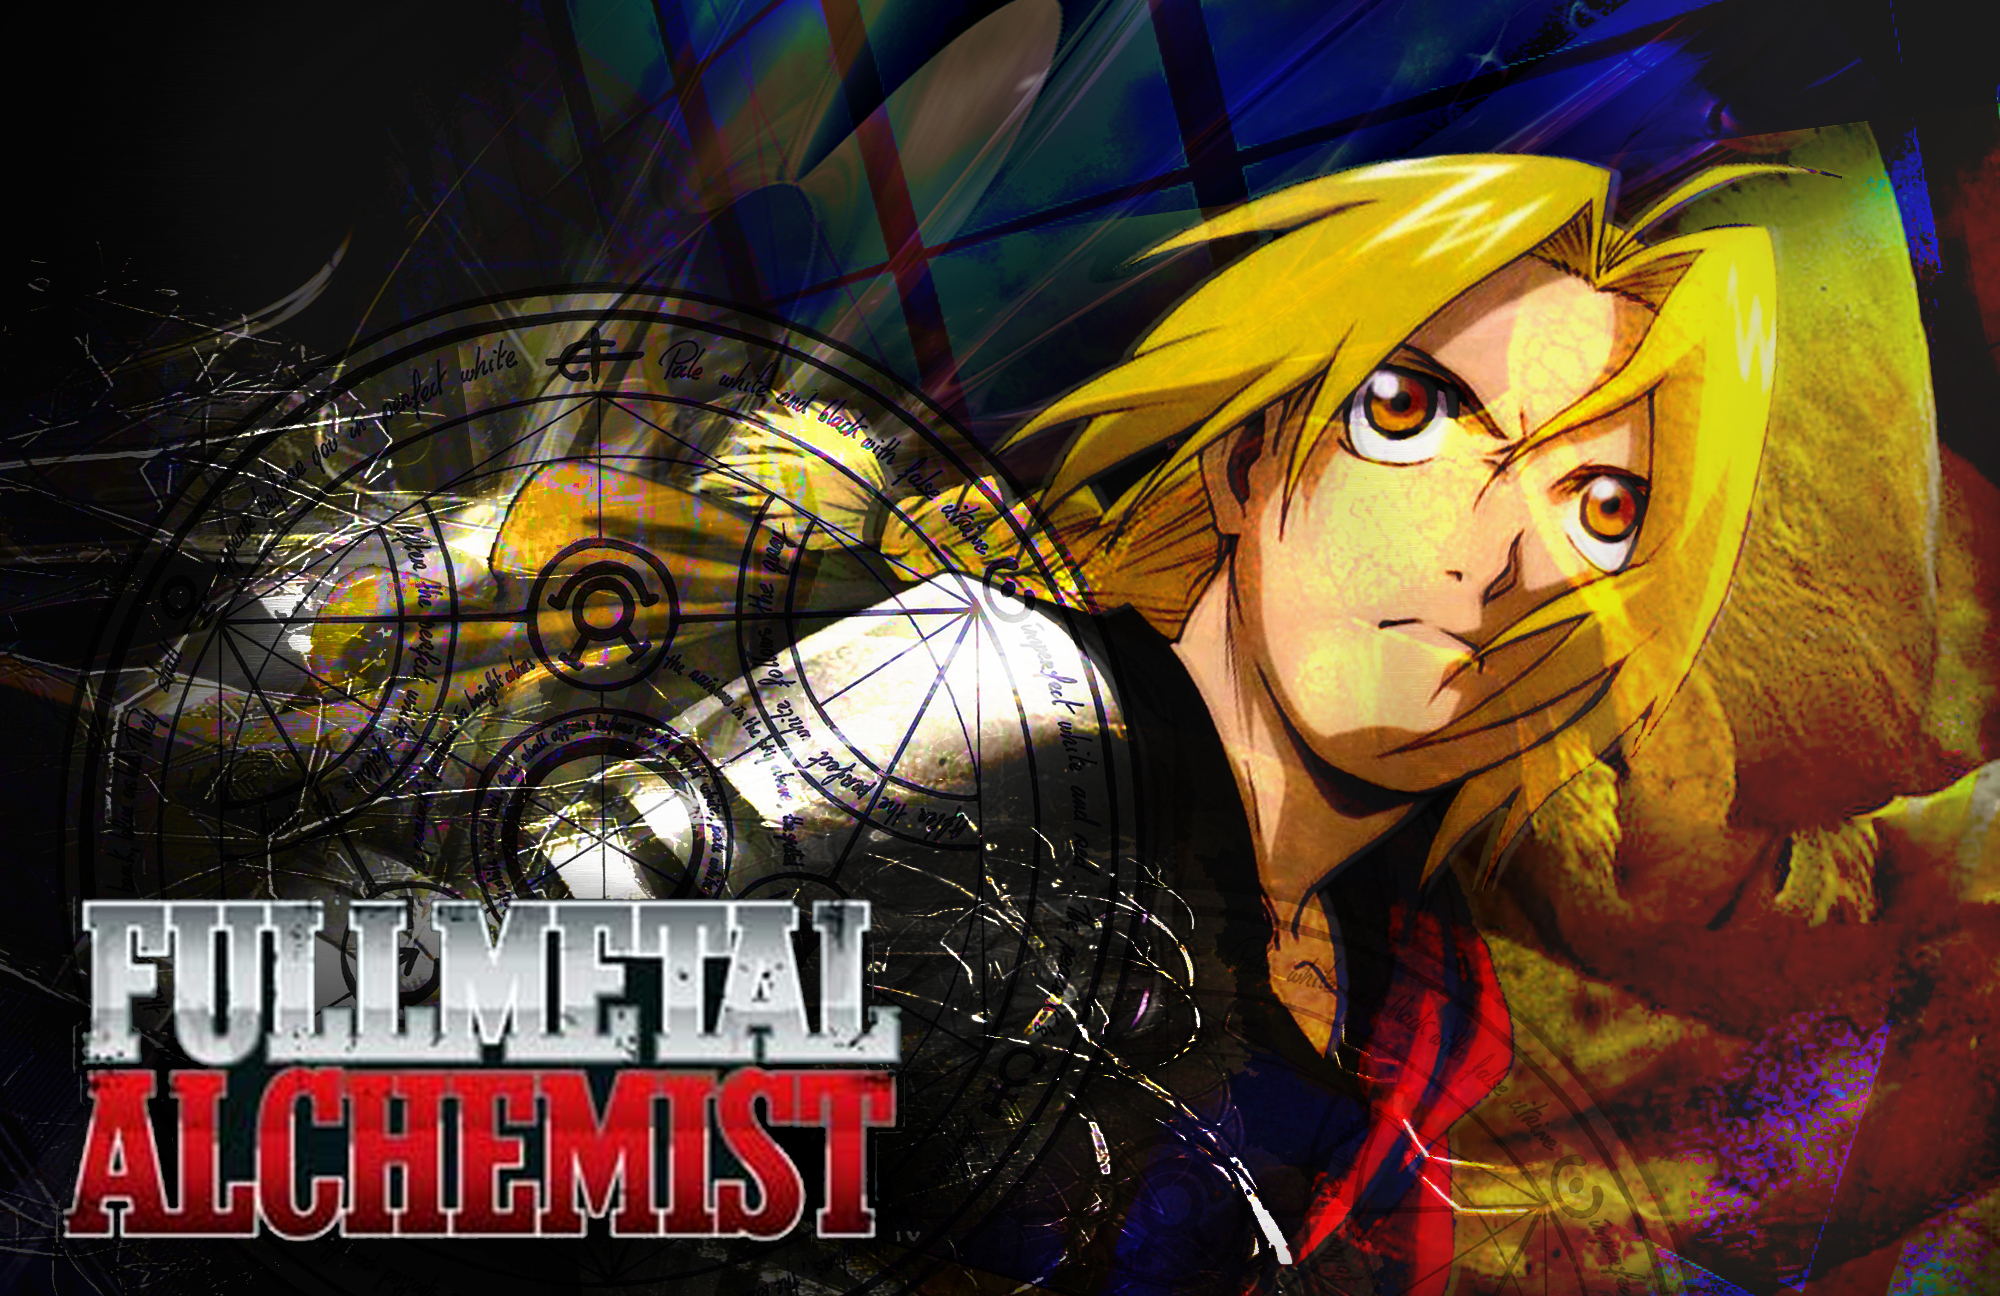 Full Metal Alchemist Japandaman 2000x1296